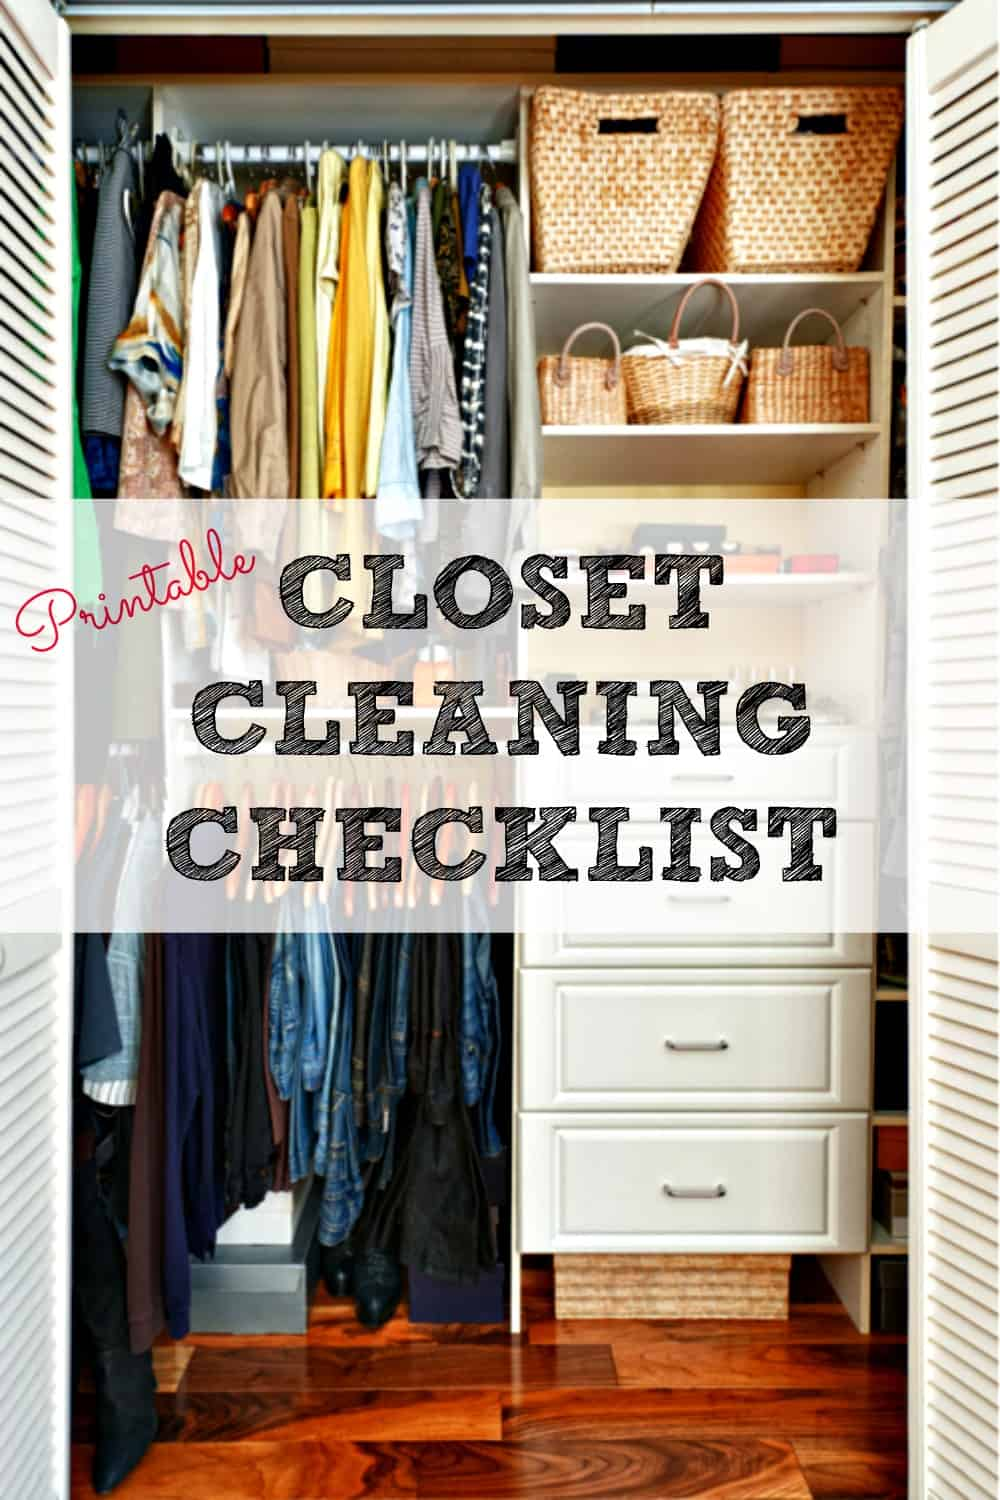 Total Closet Cleaning Checklist - Get a clean and organized closet you can be proud of with this checklist. #cleaning #homeorganization #cluttercontrol #clutter #organizing #closet #springcleaning